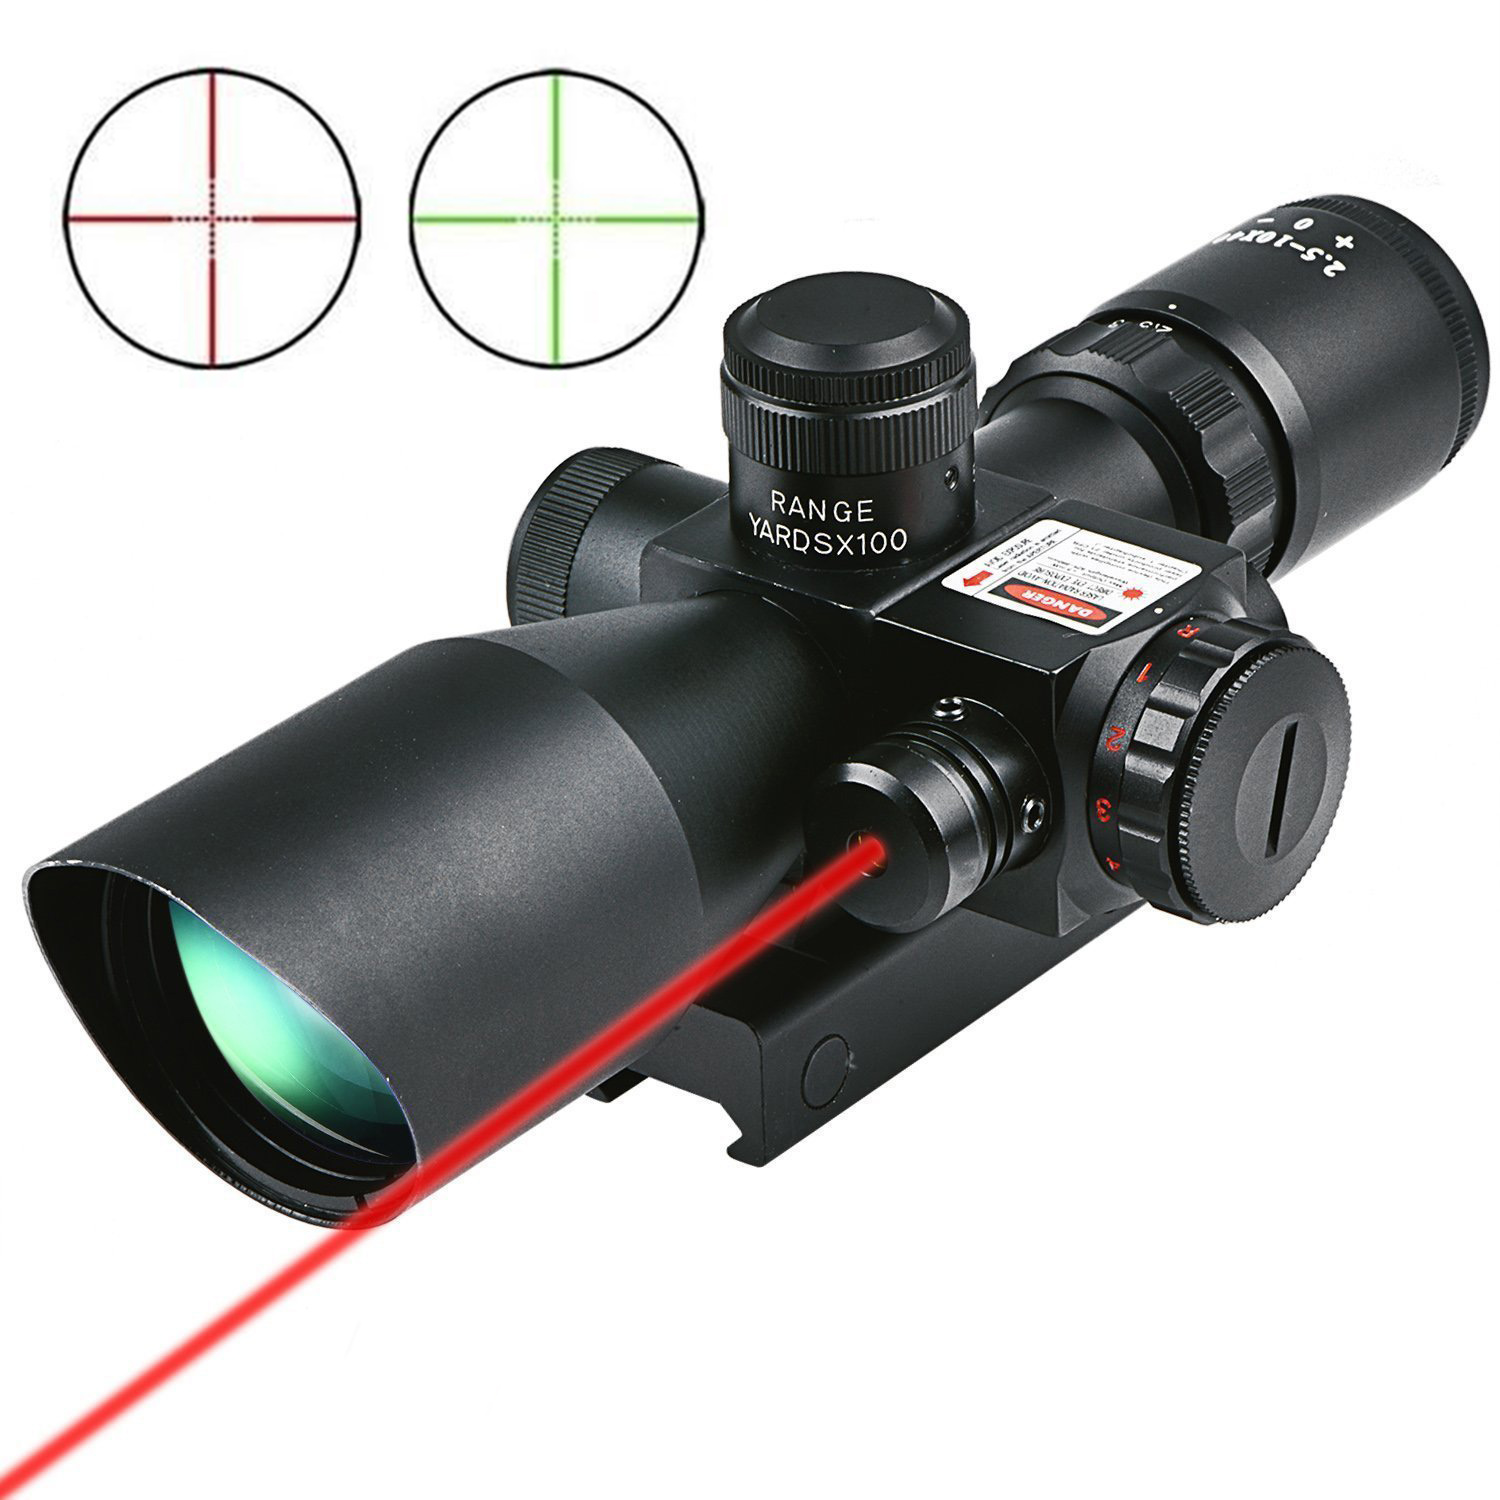 Cvlife Hunting Rifle Scope 2.5-10x40 e Red & Green Crosshair Illuminated Gun Scopes with Red Laser w  20mm & 11mm Mount by Cvlife